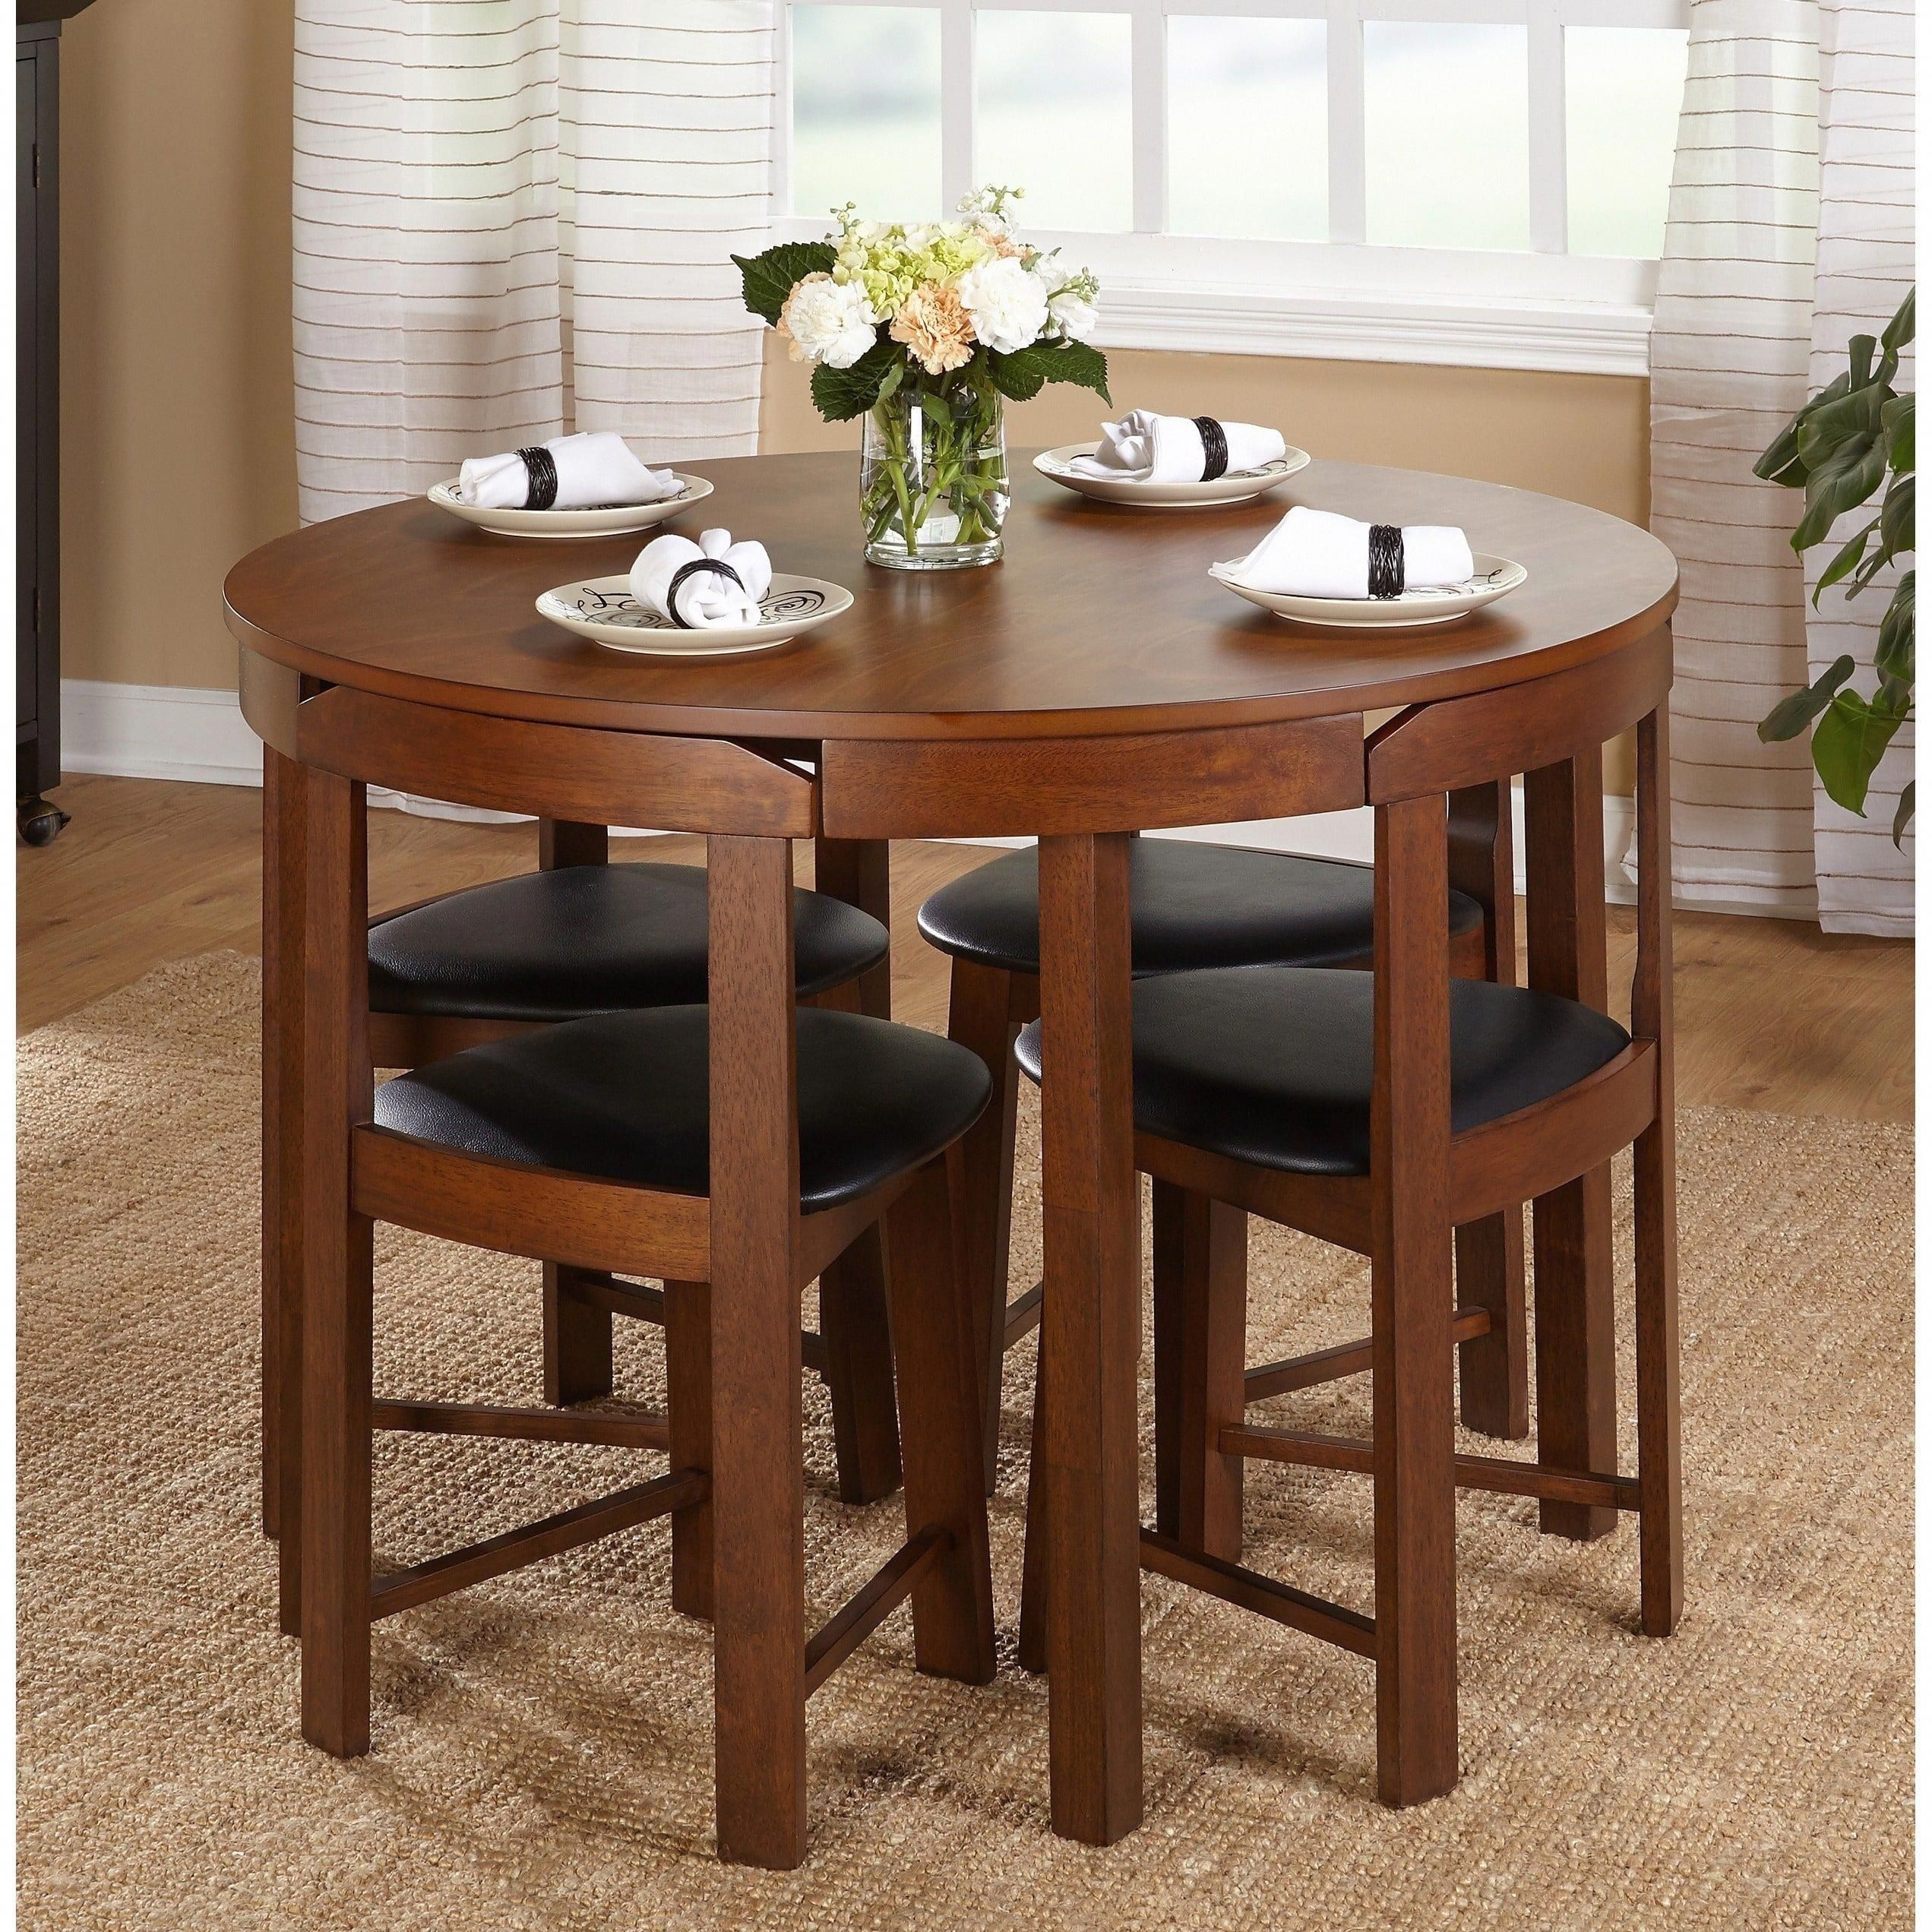 Chairs Bed Bath And Beyond Familyroomaccentchairs Gamingchair Kitchen Table Settings Small Dining Room Table Round Dining Table Sets